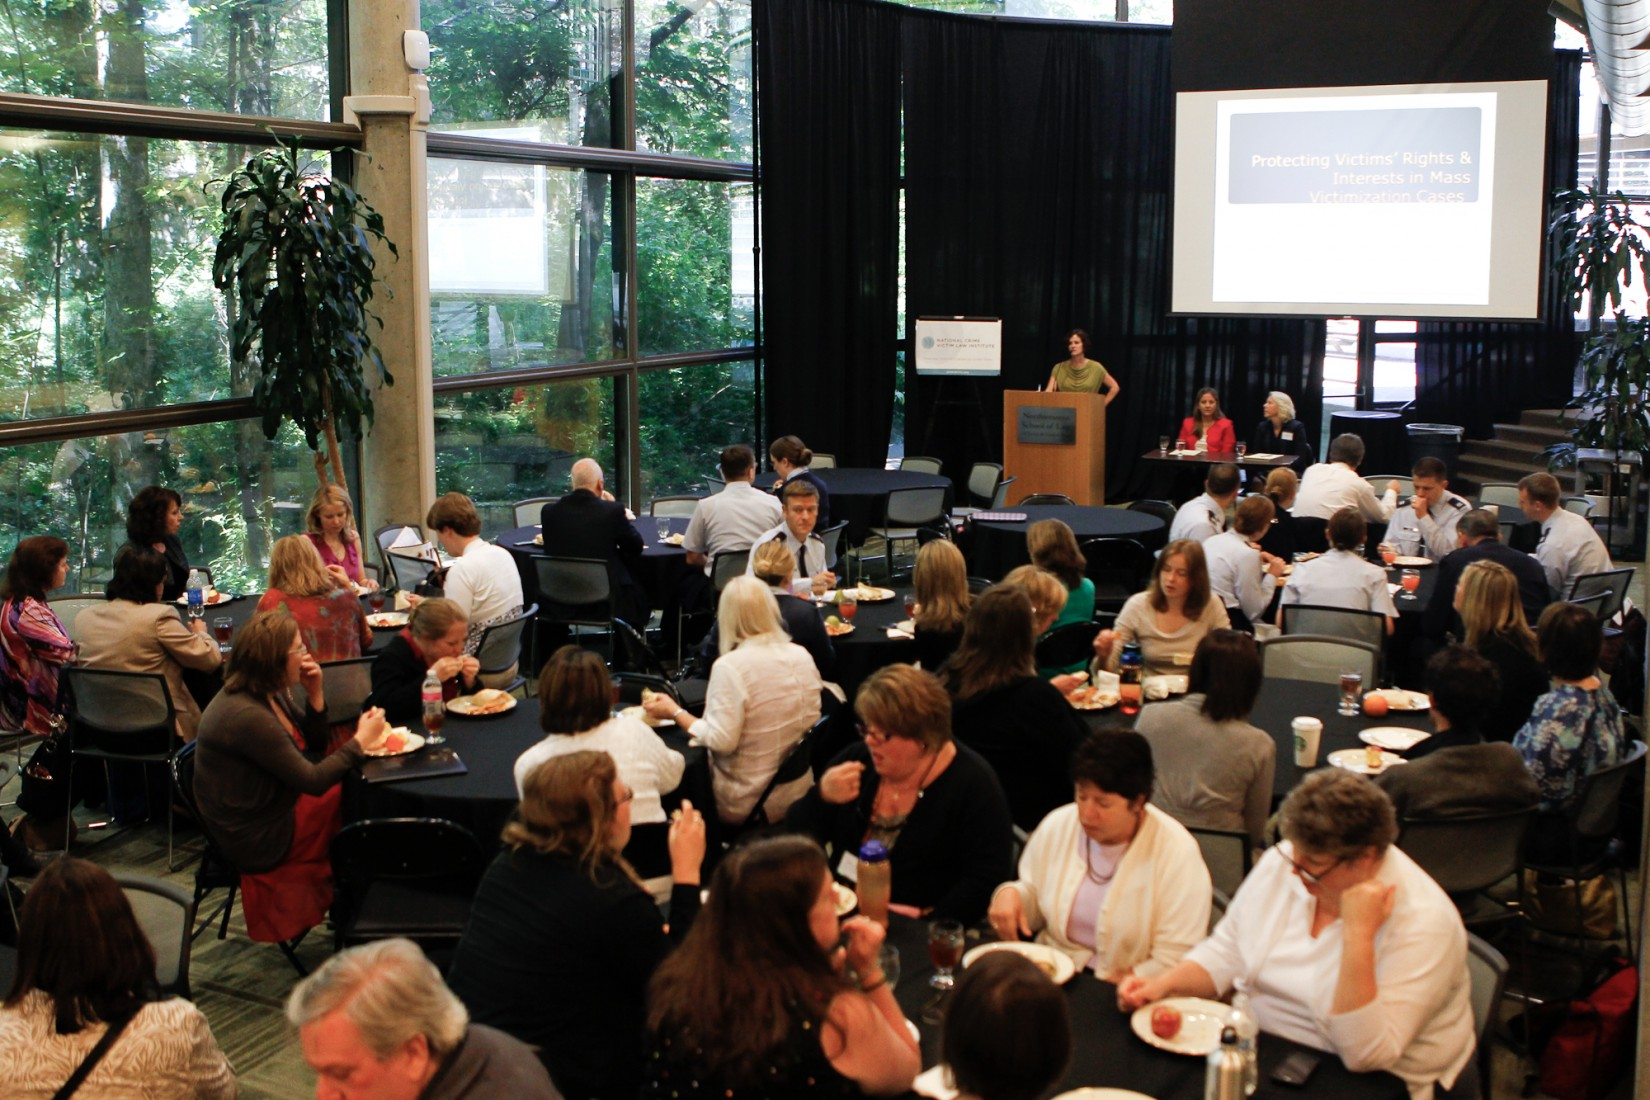 More than 200 attorneys, advocates, and other victim law practitioners from around the country attended NCVLI's 12th Annual Crime Victim Law Conference in June 2013 at Lewis & Clark Law School.